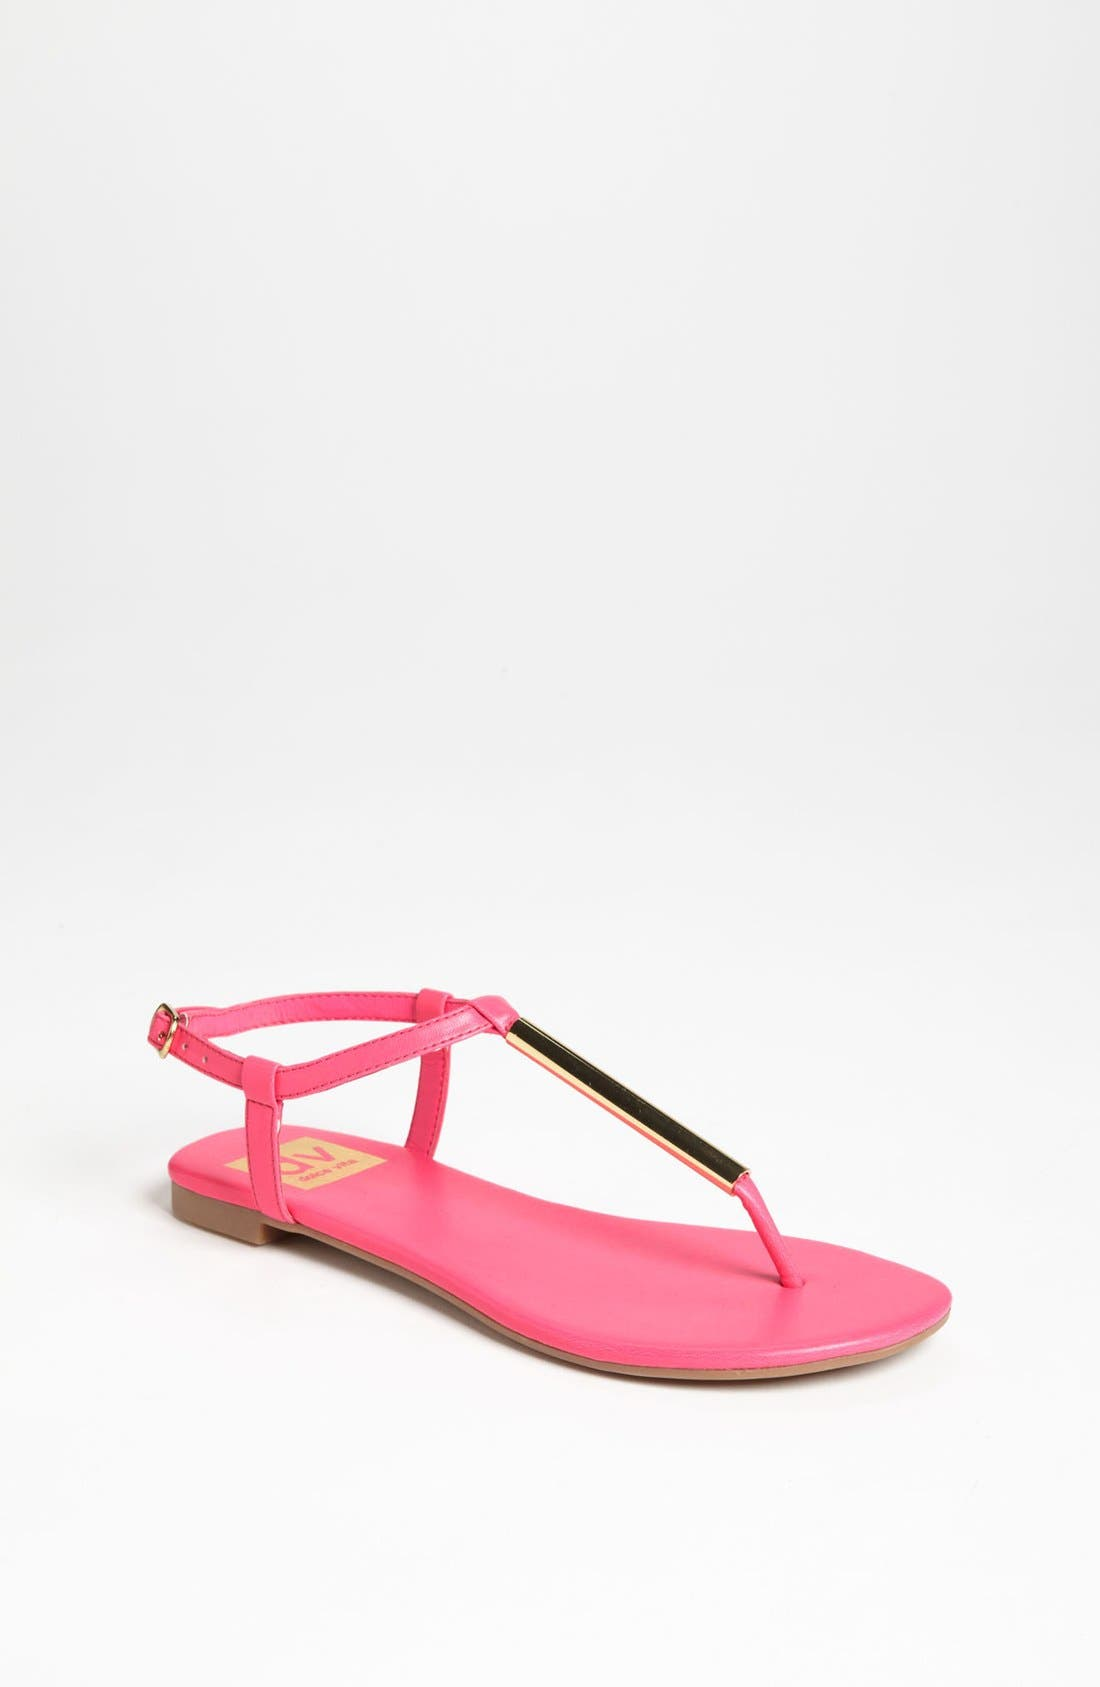 Main Image - DV by Dolce Vita 'Amiga' Sandal (Toddler, Little Kid & Big Kid)